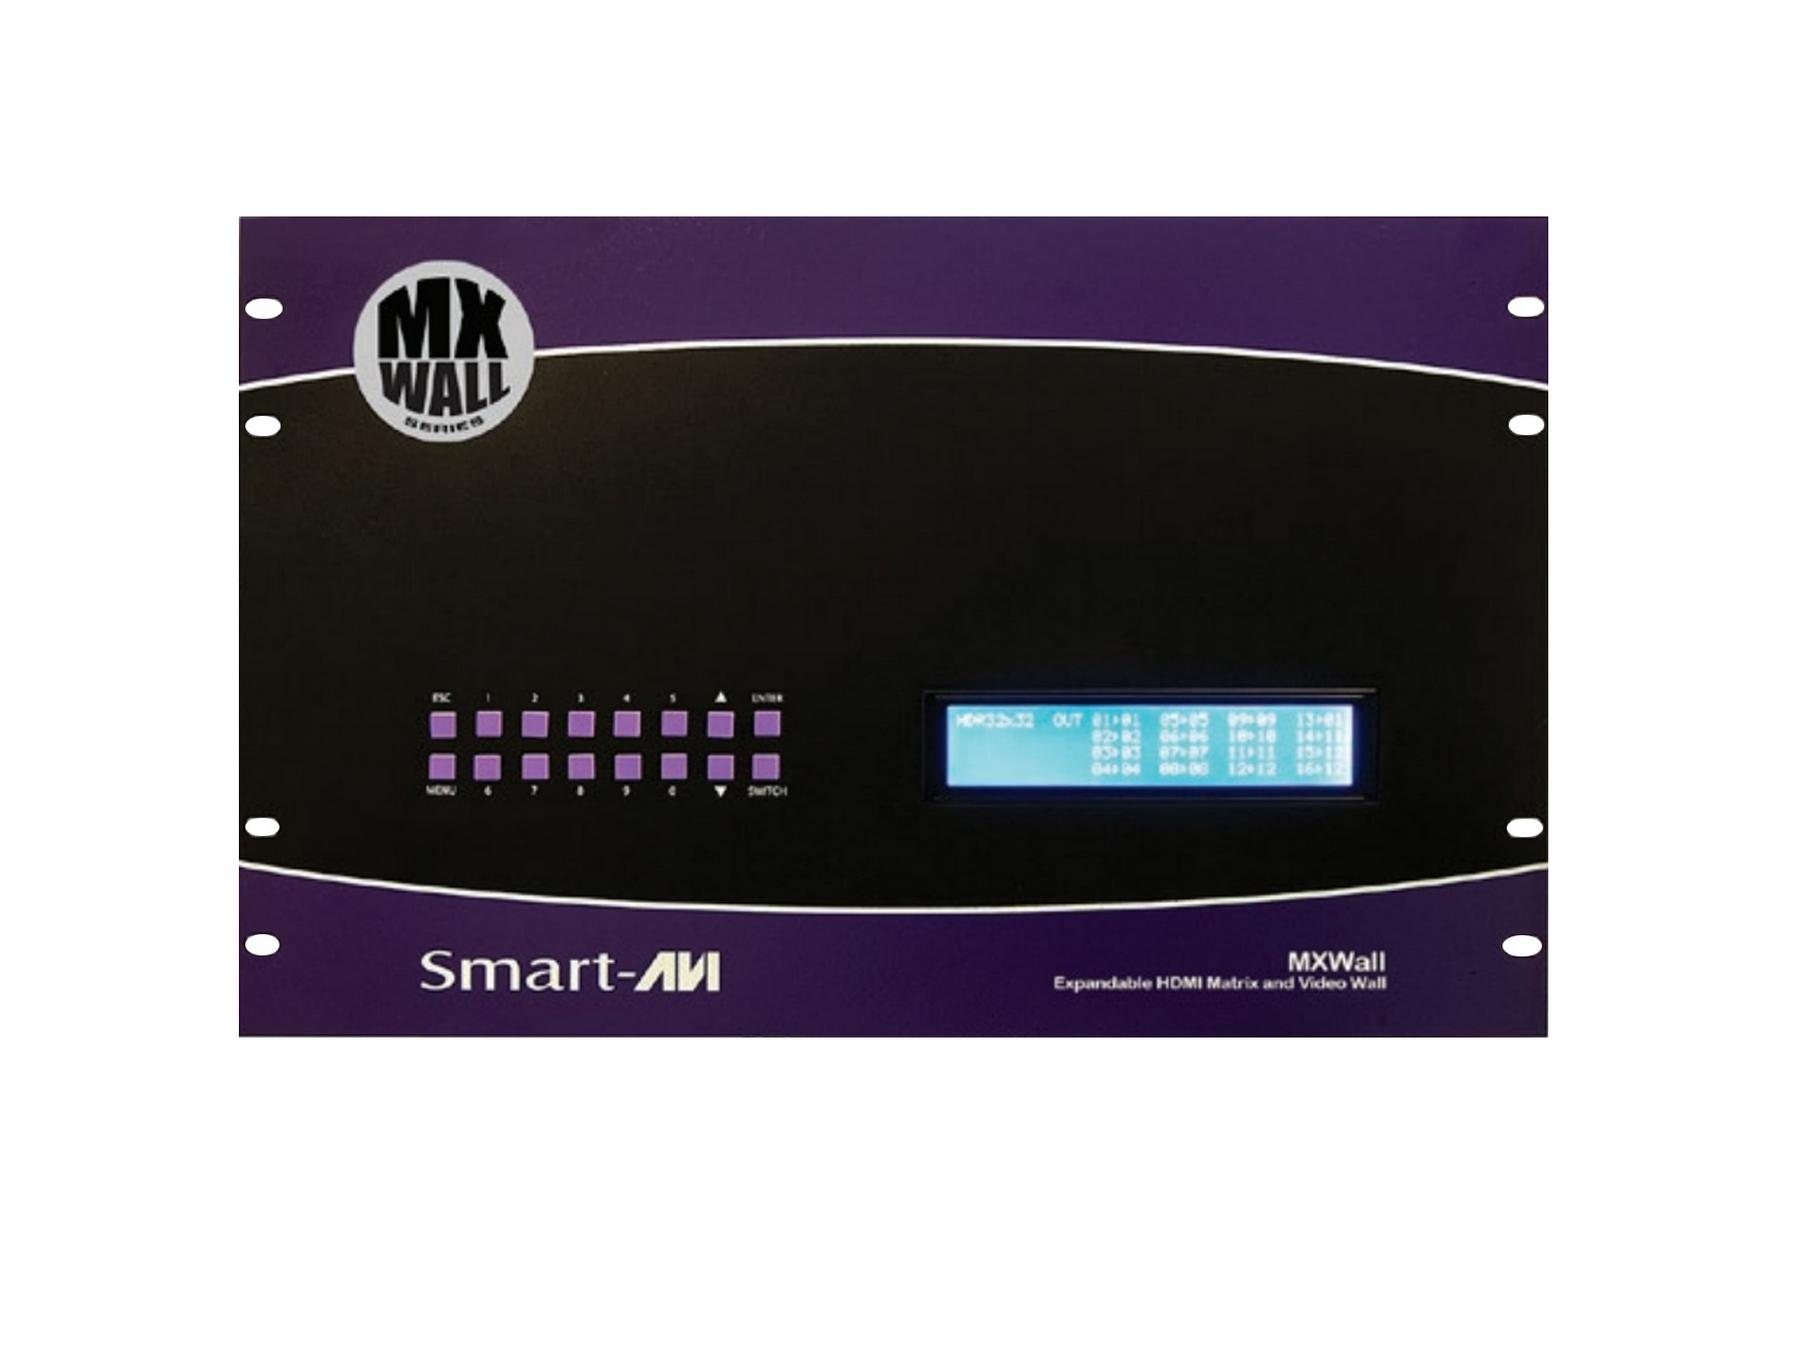 MXWall-0808S 08x08 HDMI Matrix with Integrated Video Wall by Smartavi